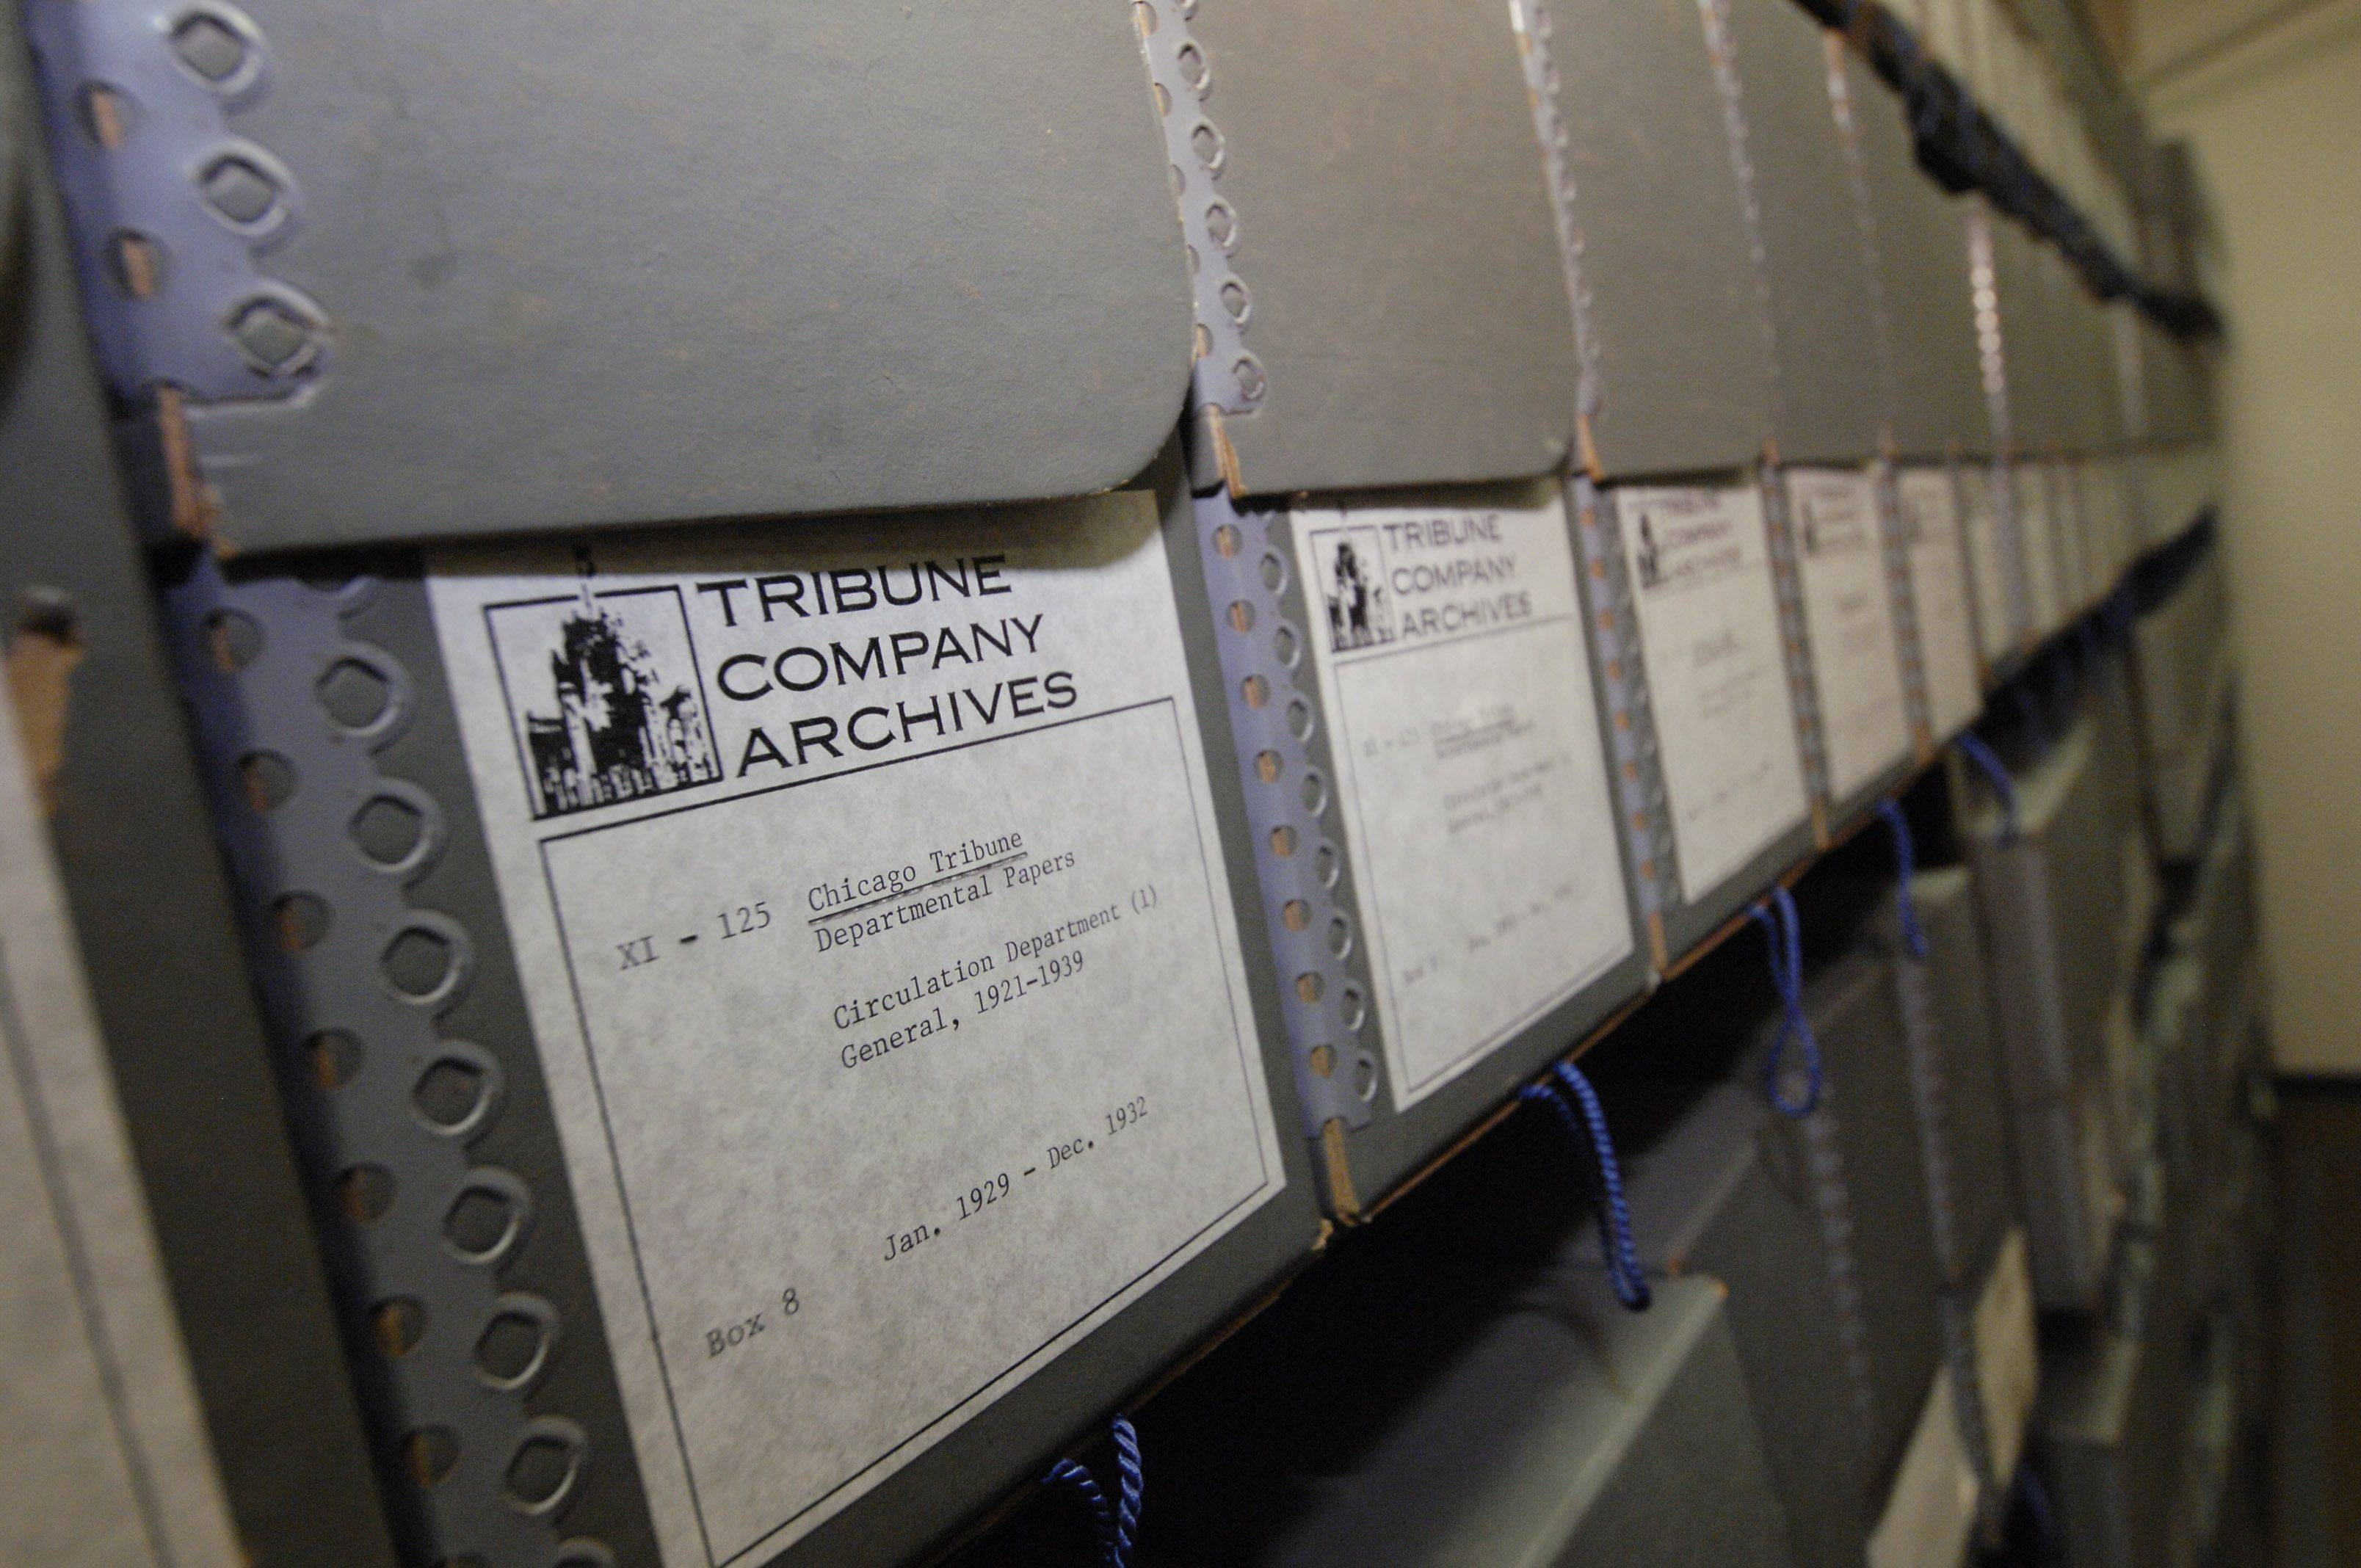 The McCormick papers are under lock and key in the Colonel Robert R. McCormick Research center in the 1st Division Museum at Cantigny Park in Wheaton. The McCormick papers fill 599 boxes full of correspondence and documents.